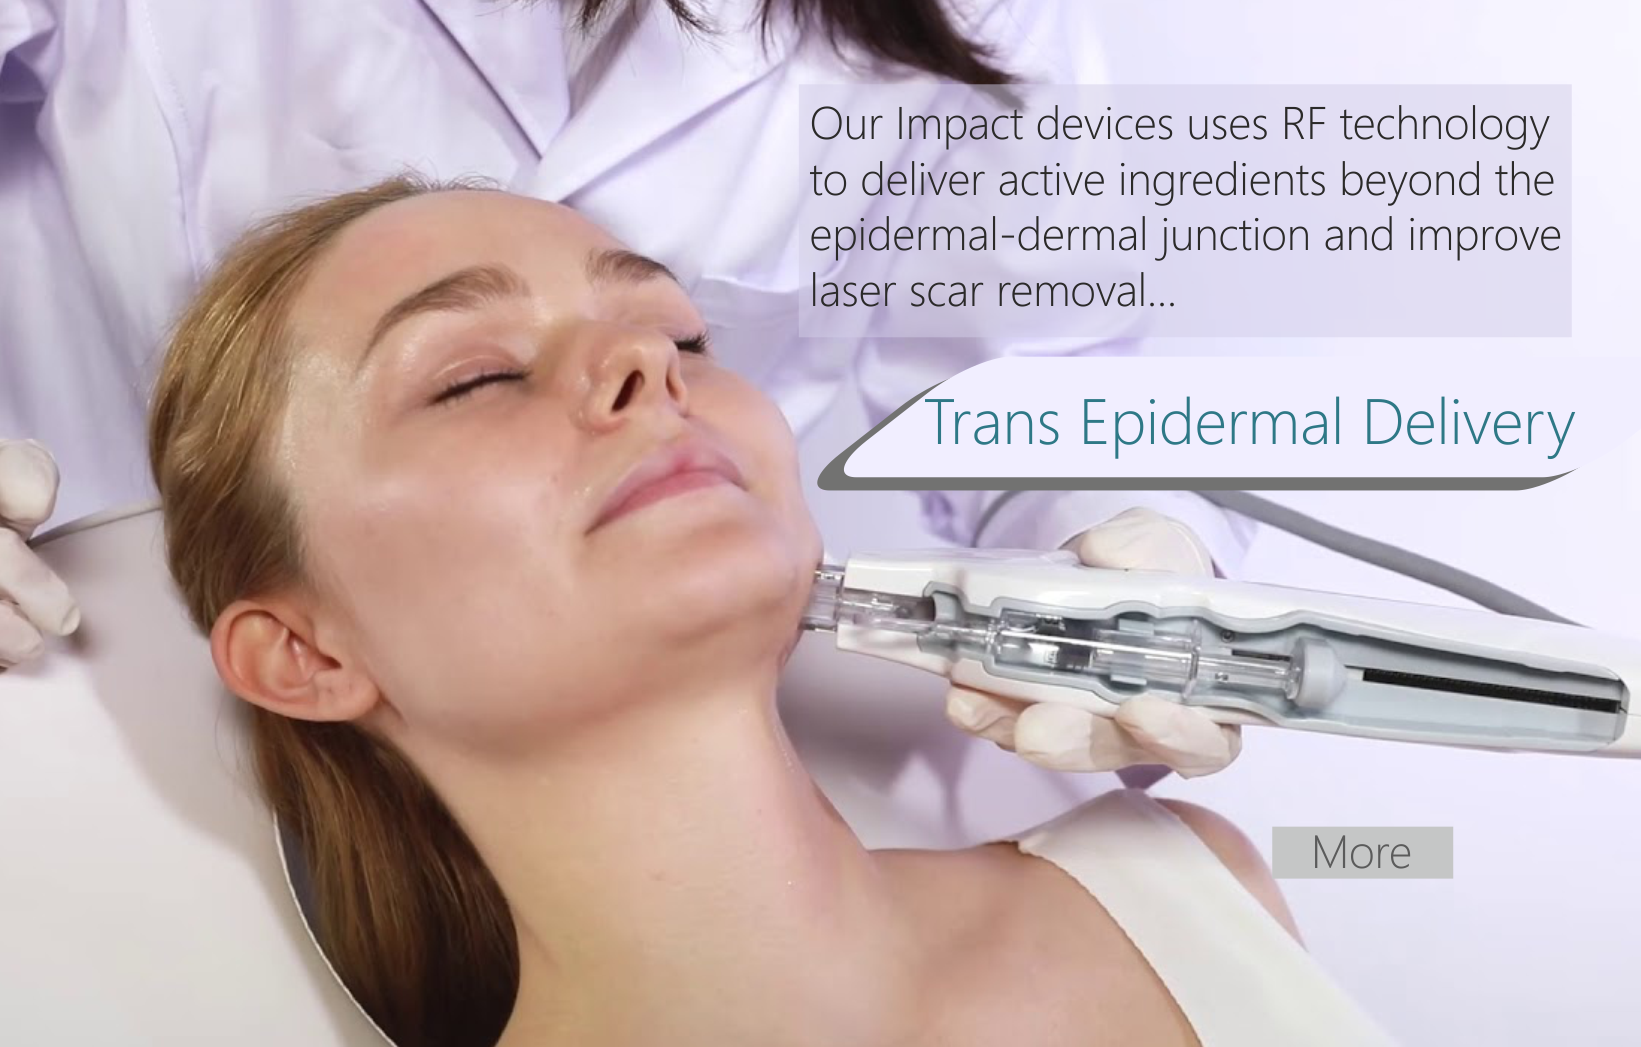 Trans Epidermal Delivery